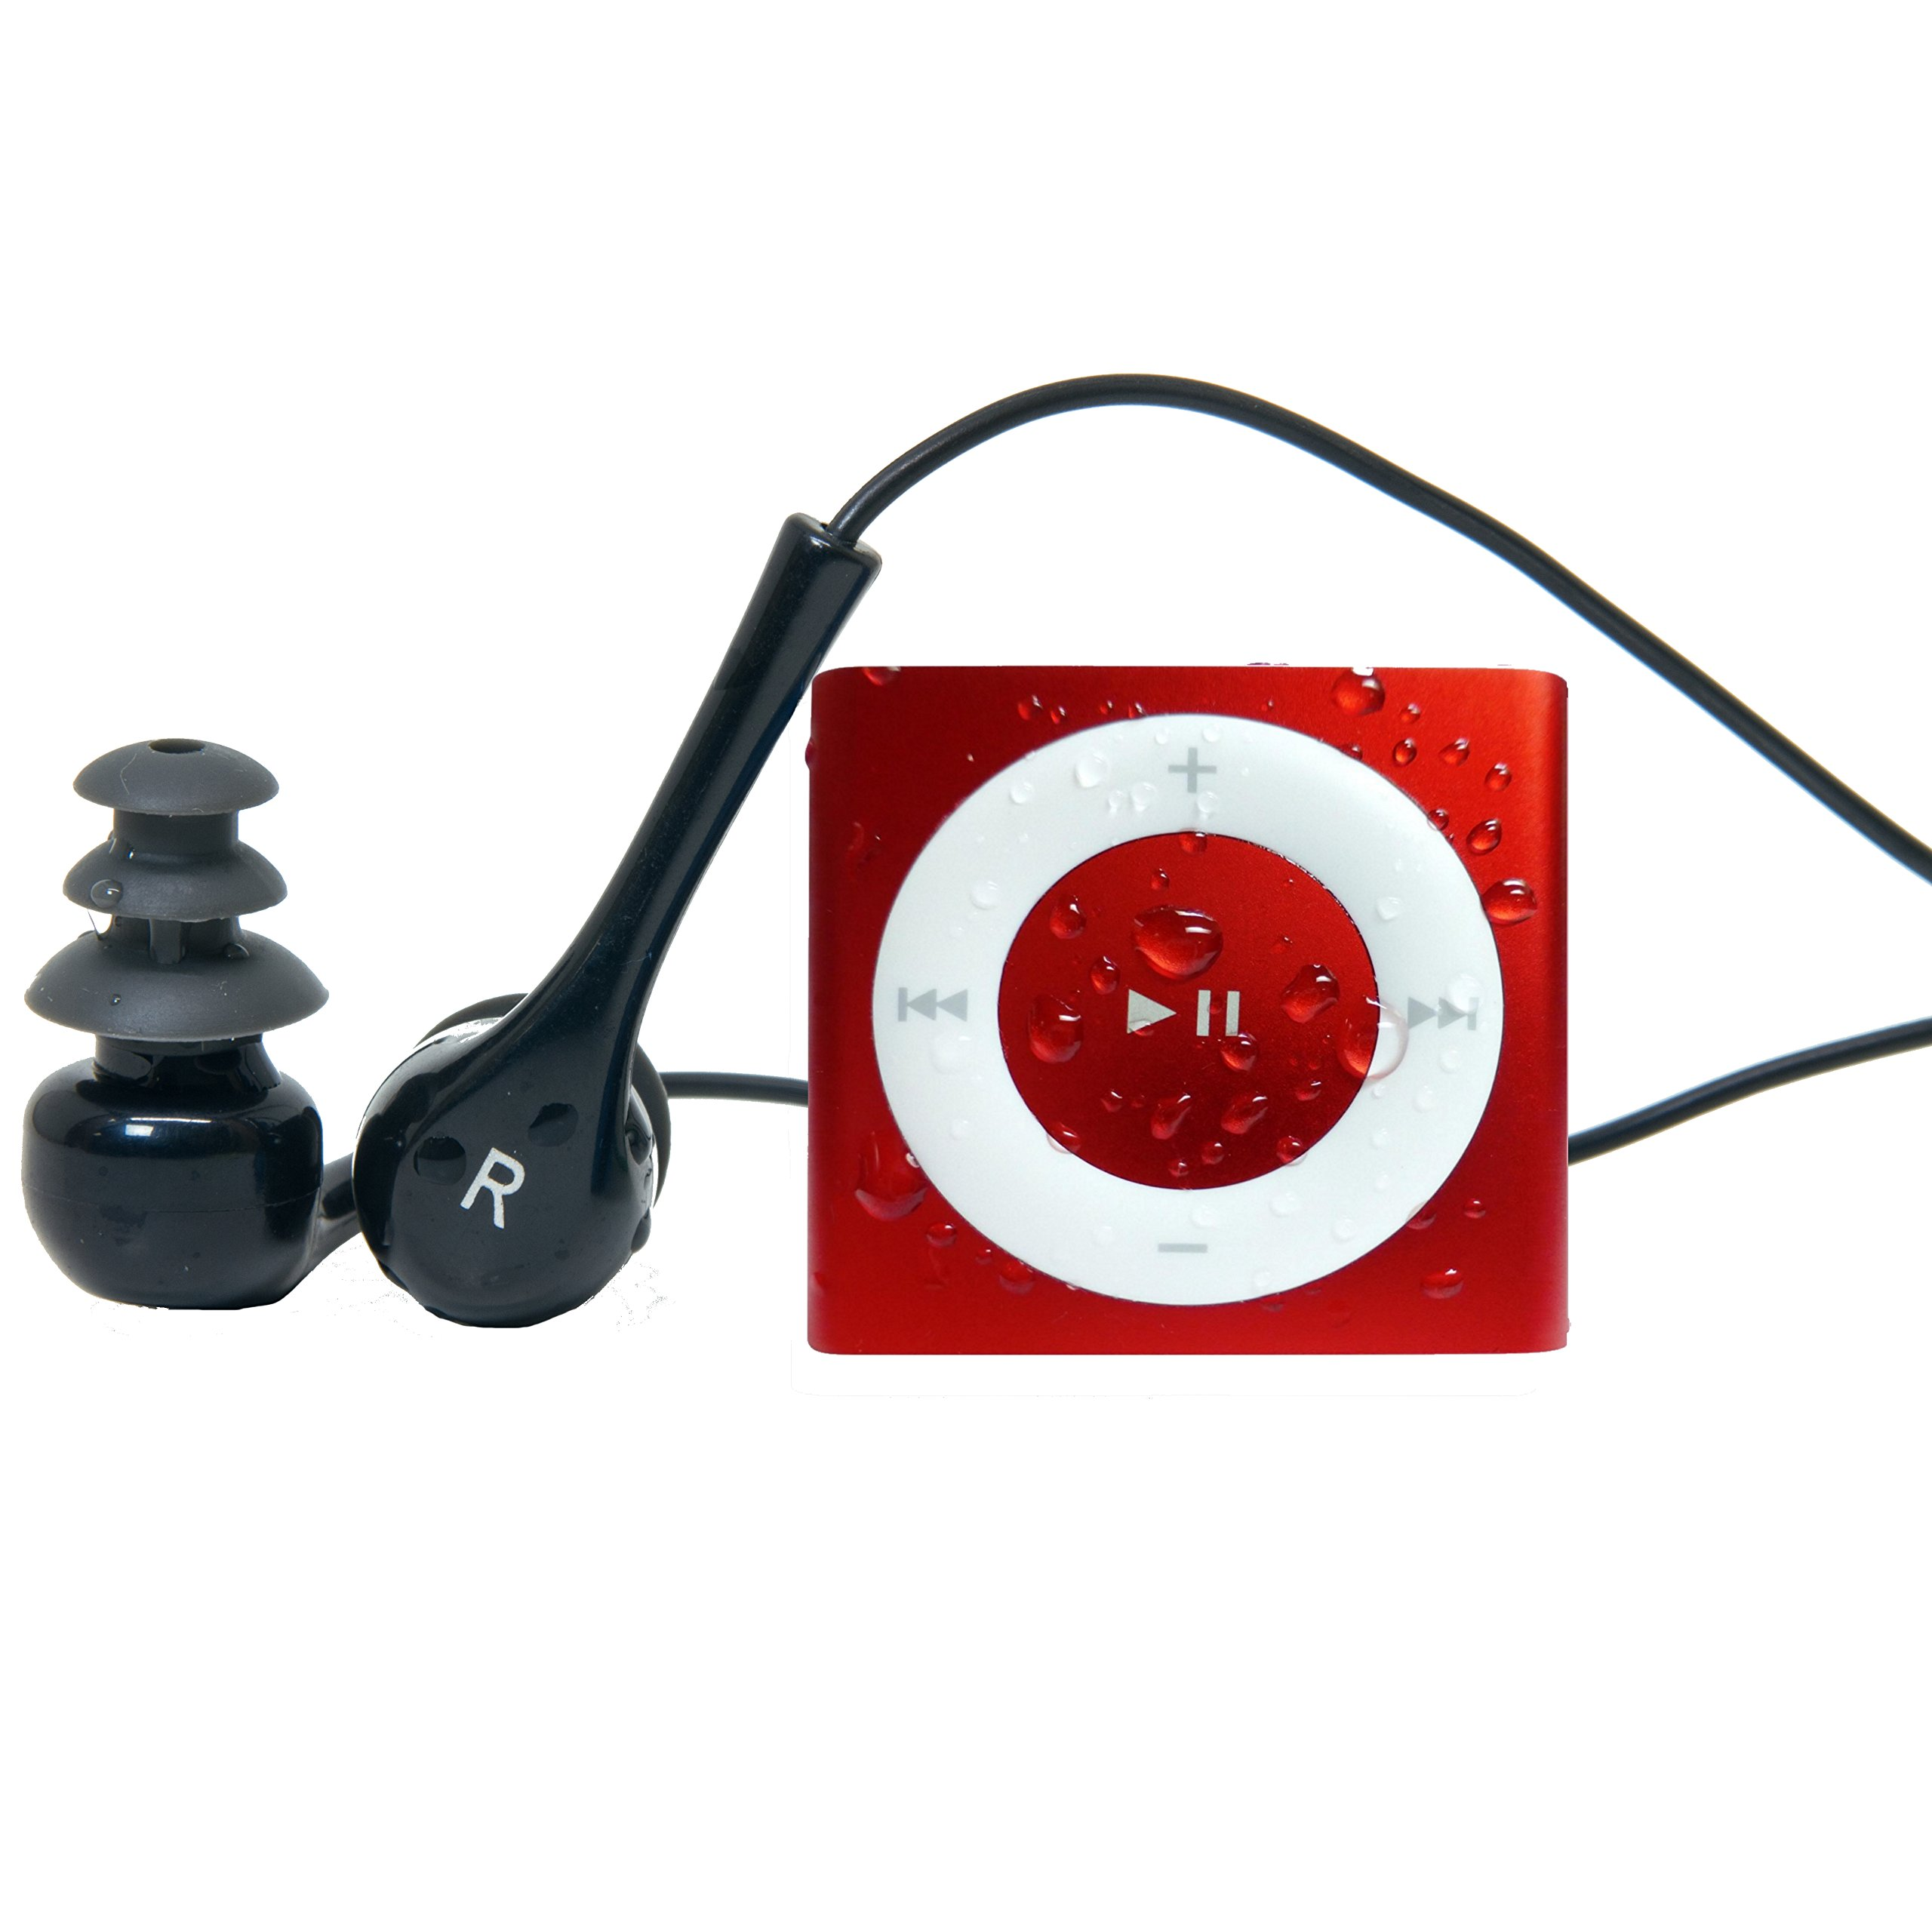 Buy IpodProducts Now!